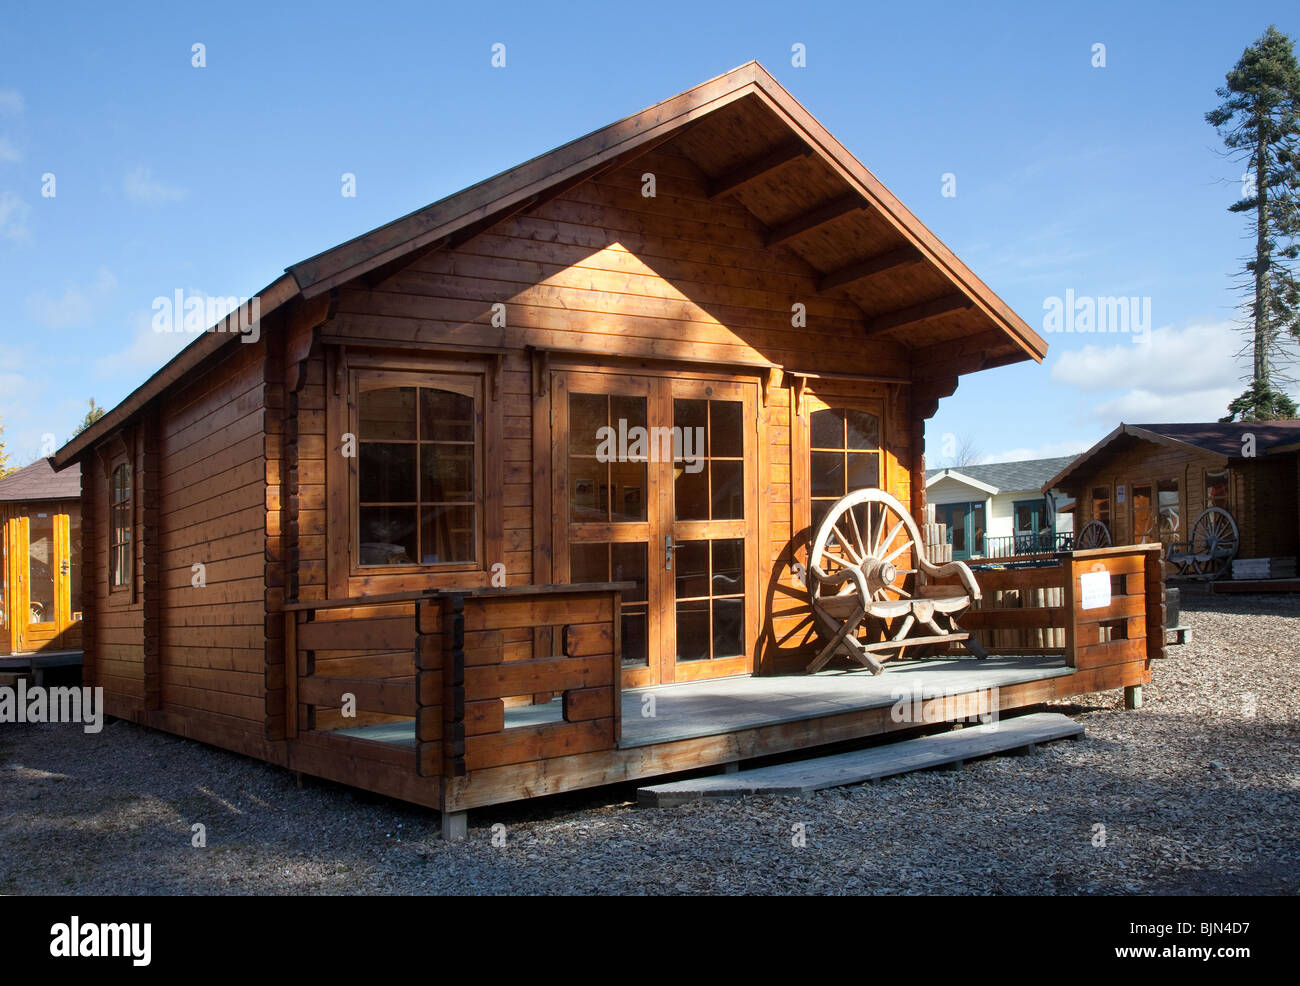 timber garden sheds uk pueblosinfronteras us - Garden Sheds East Kilbride